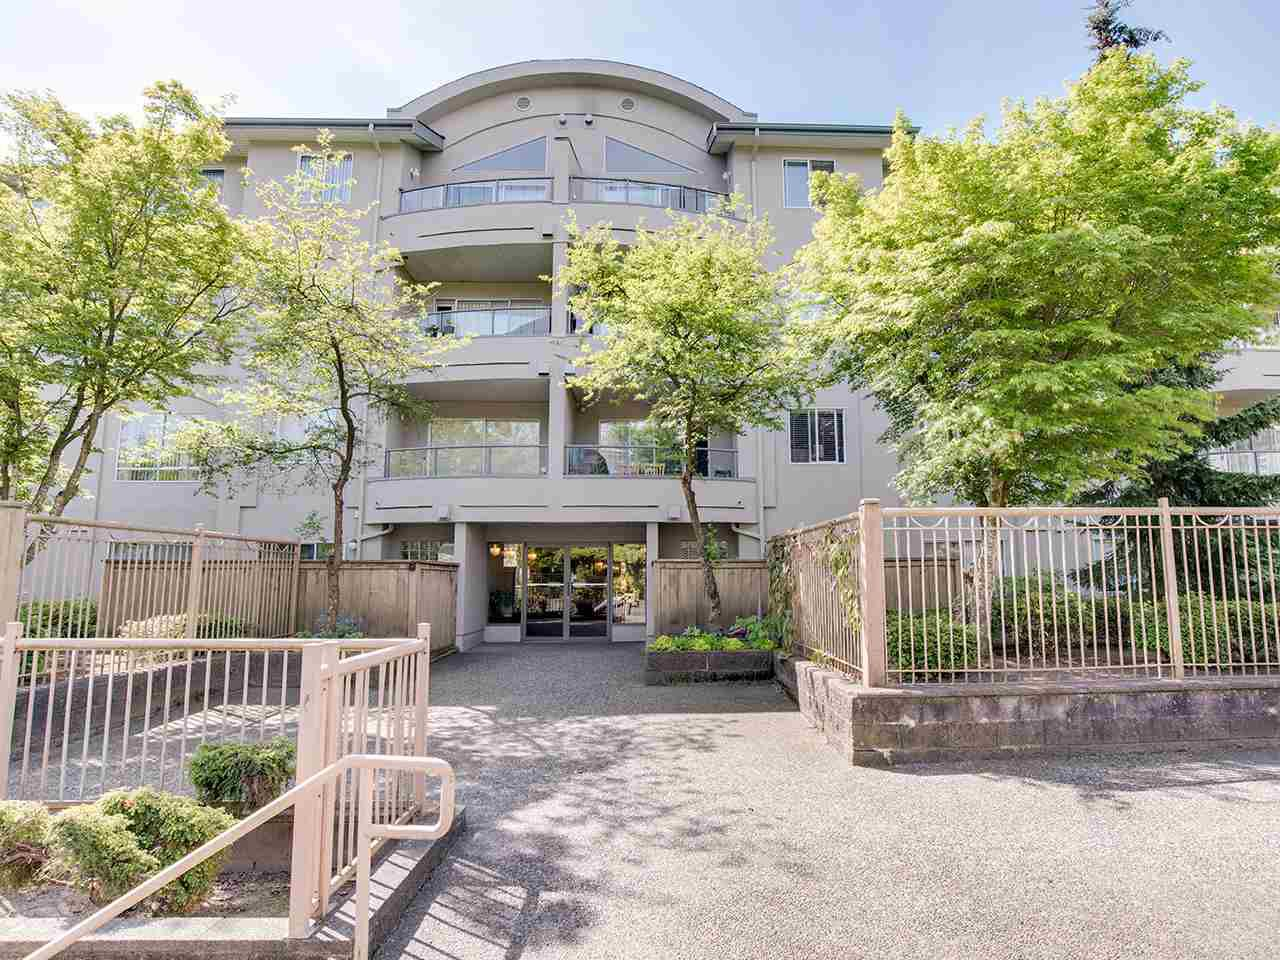 """Main Photo: 301 7475 138 Street in Delta: East Newton Condo for sale in """"CARDINAL COURT"""" (Surrey)  : MLS®# R2368570"""